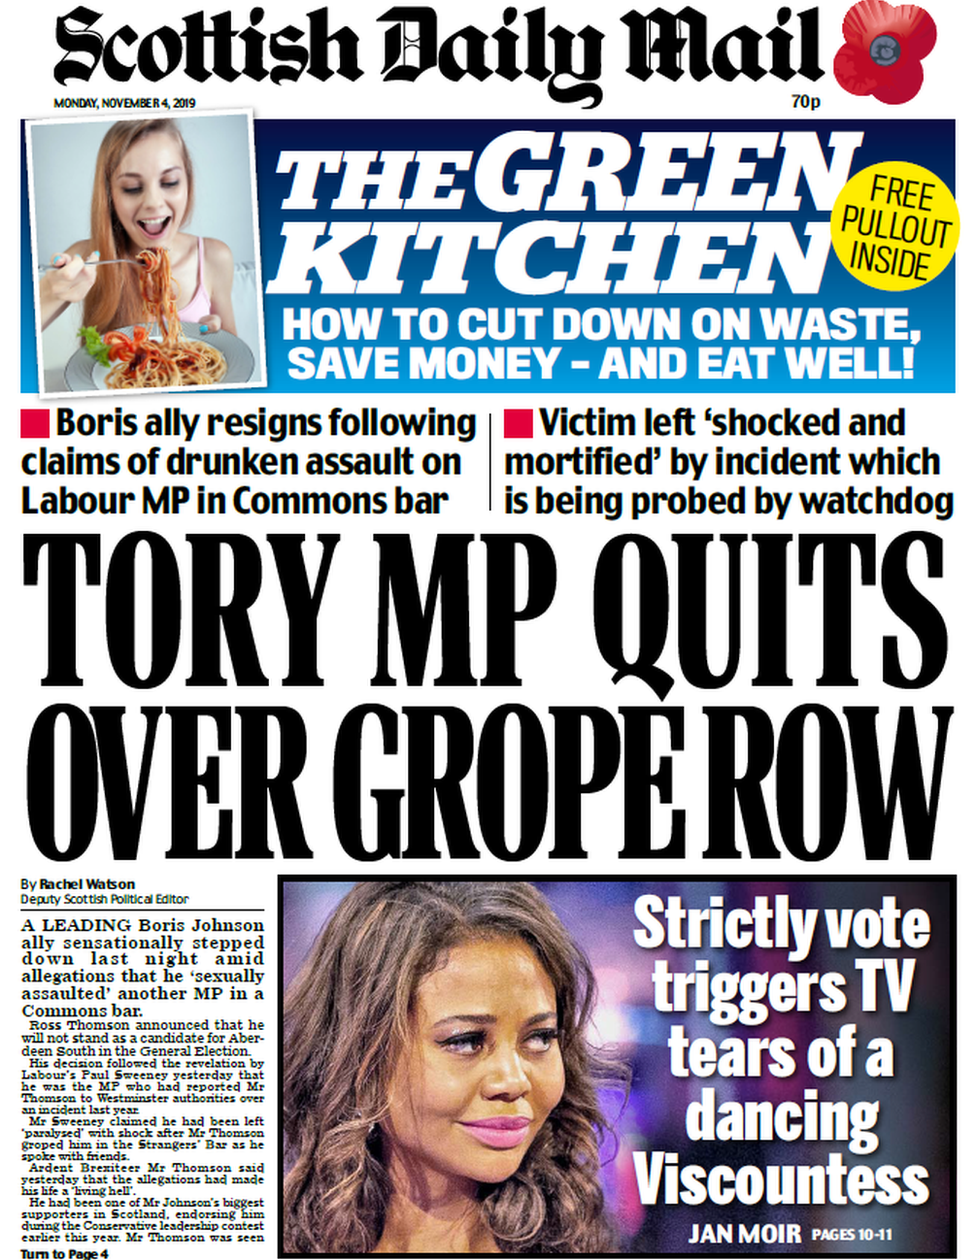 Scottish Daily Mail front page